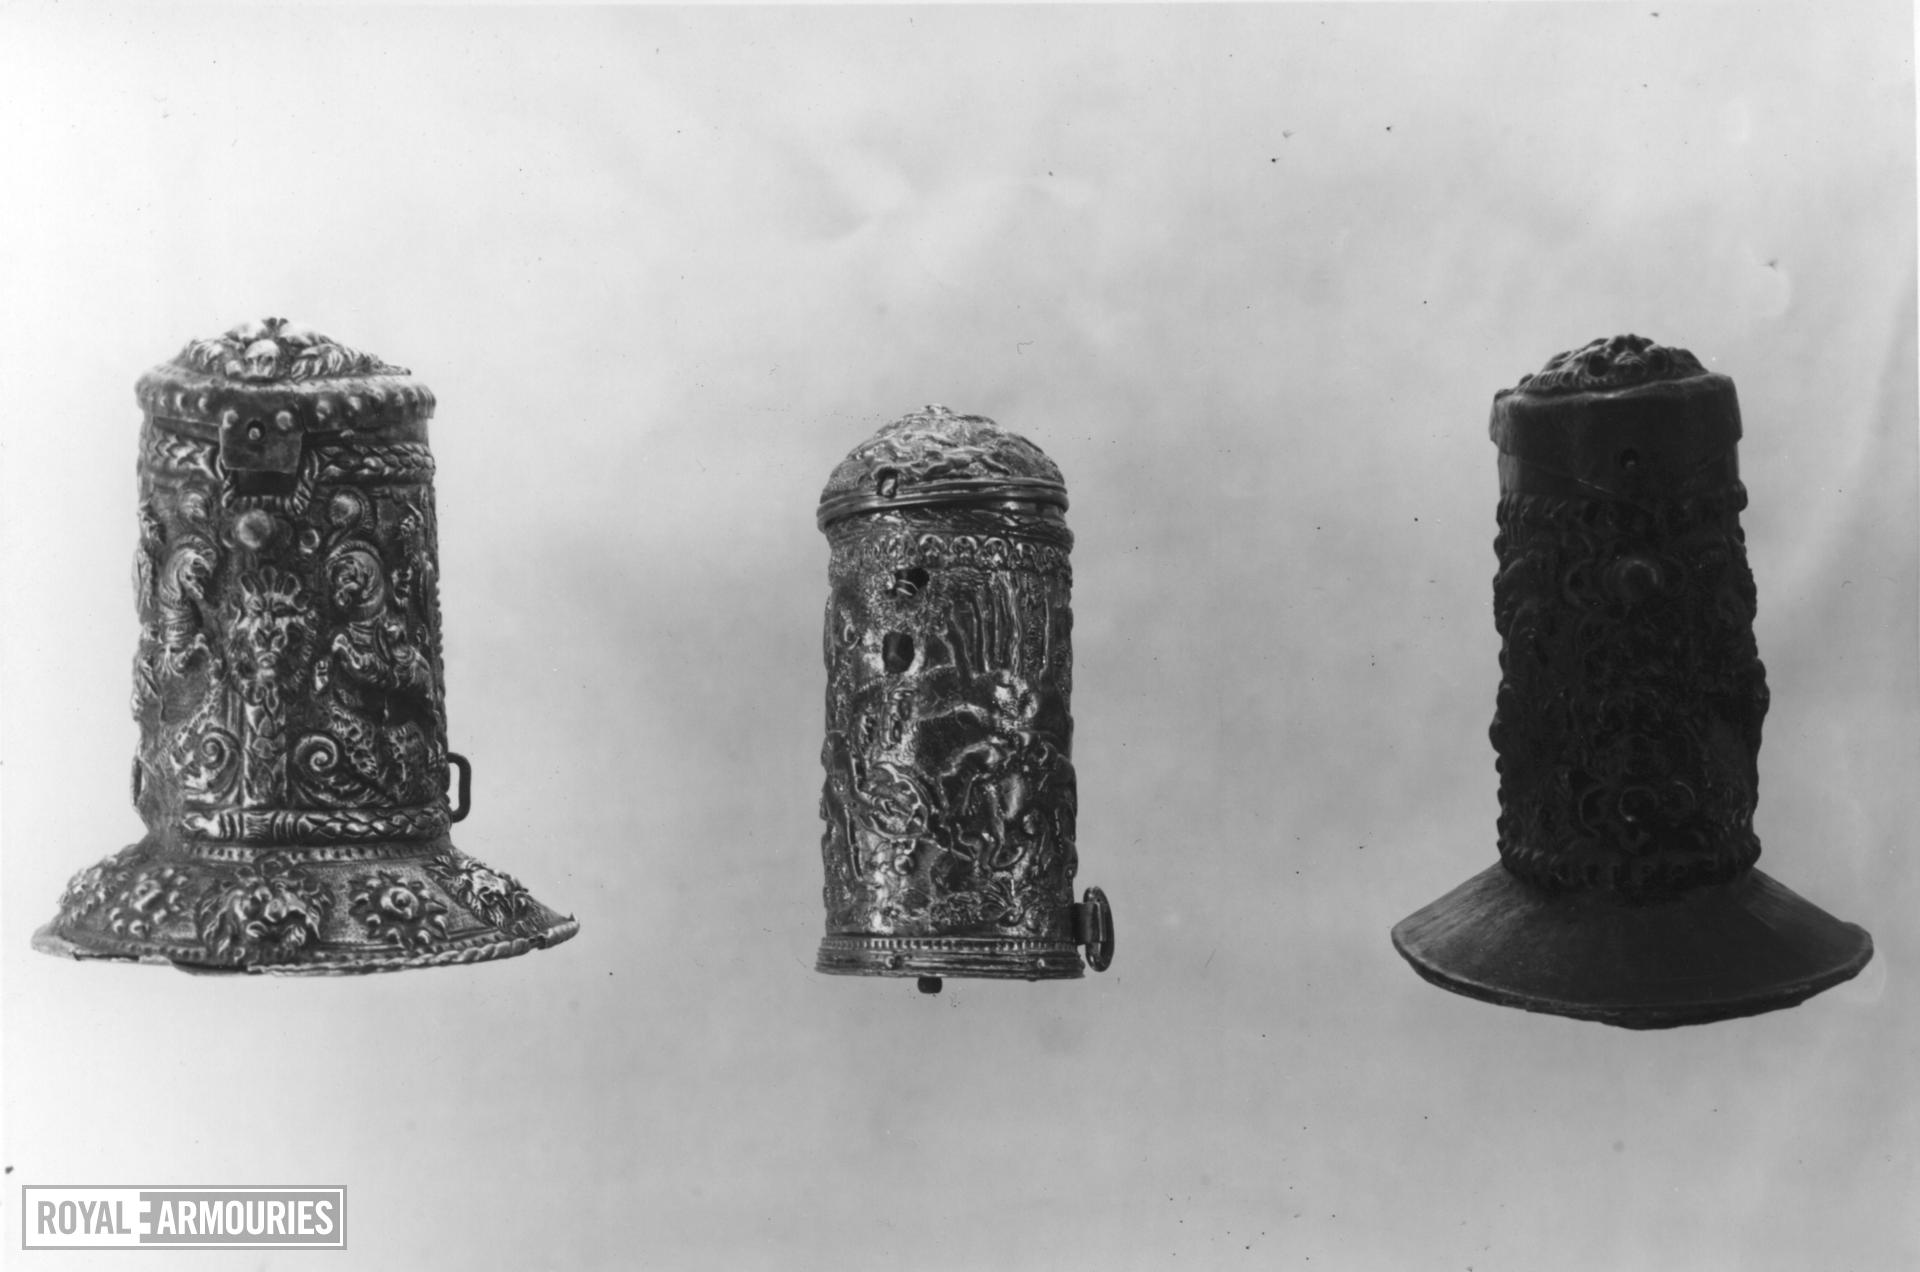 Patron Cylindrical shape with a domed cover